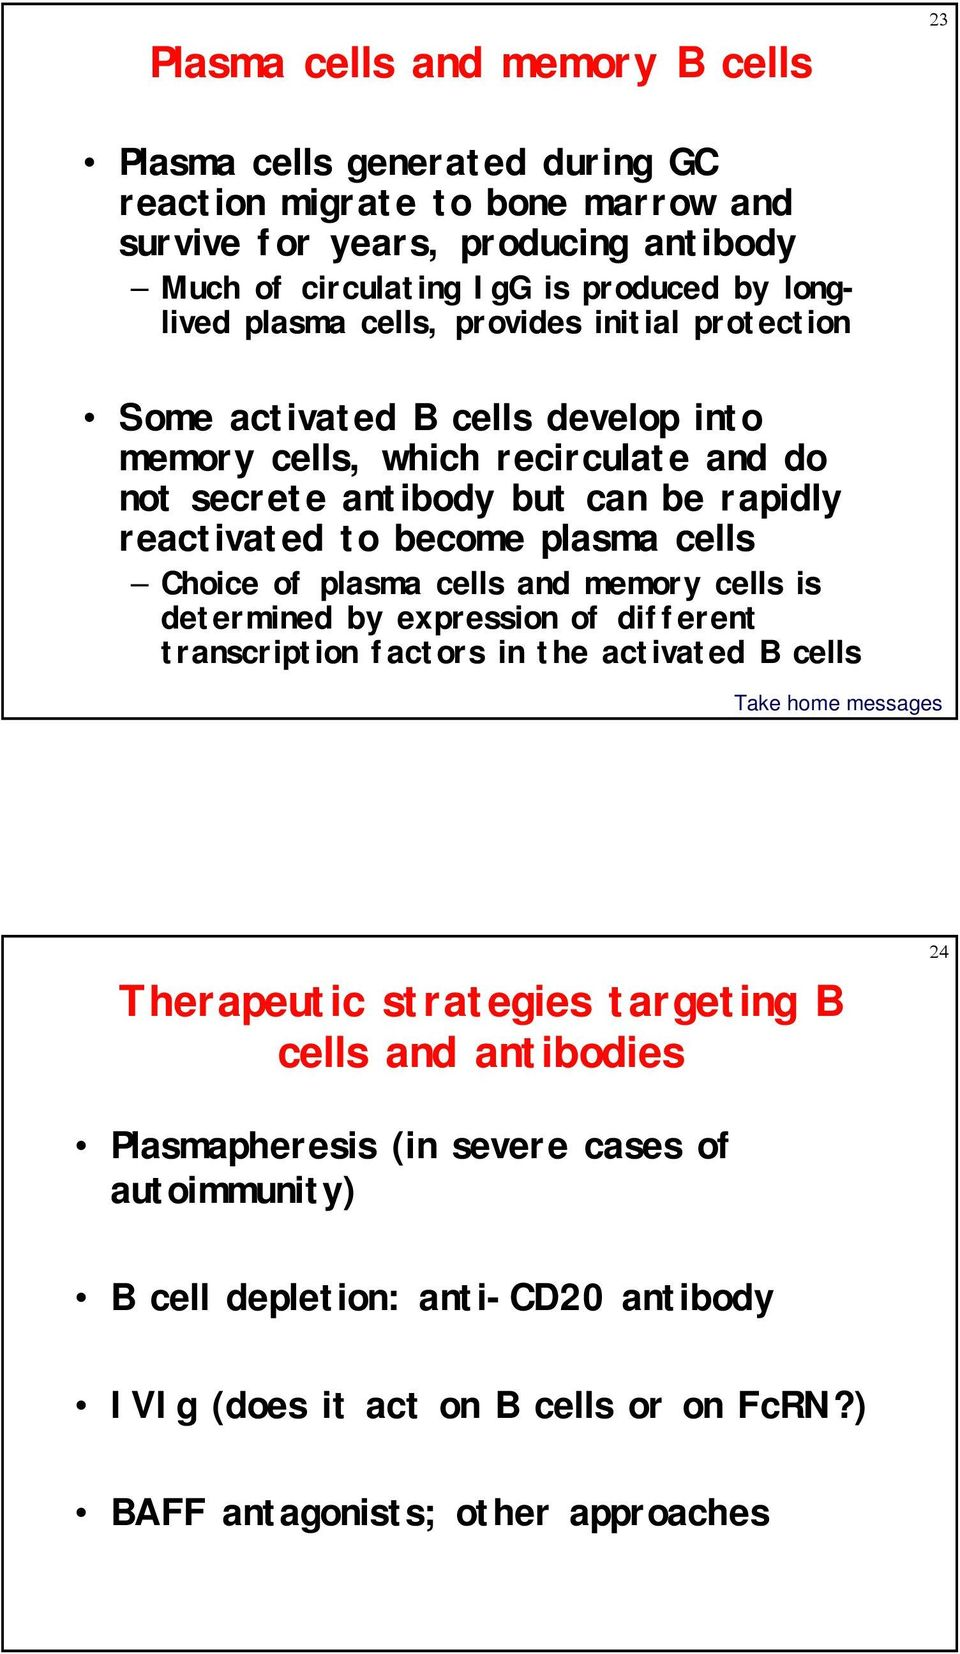 become plasma cells Choice of plasma cells and memory cells is determined by expression of different transcription factors in the activated B cells Therapeutic strategies targeting